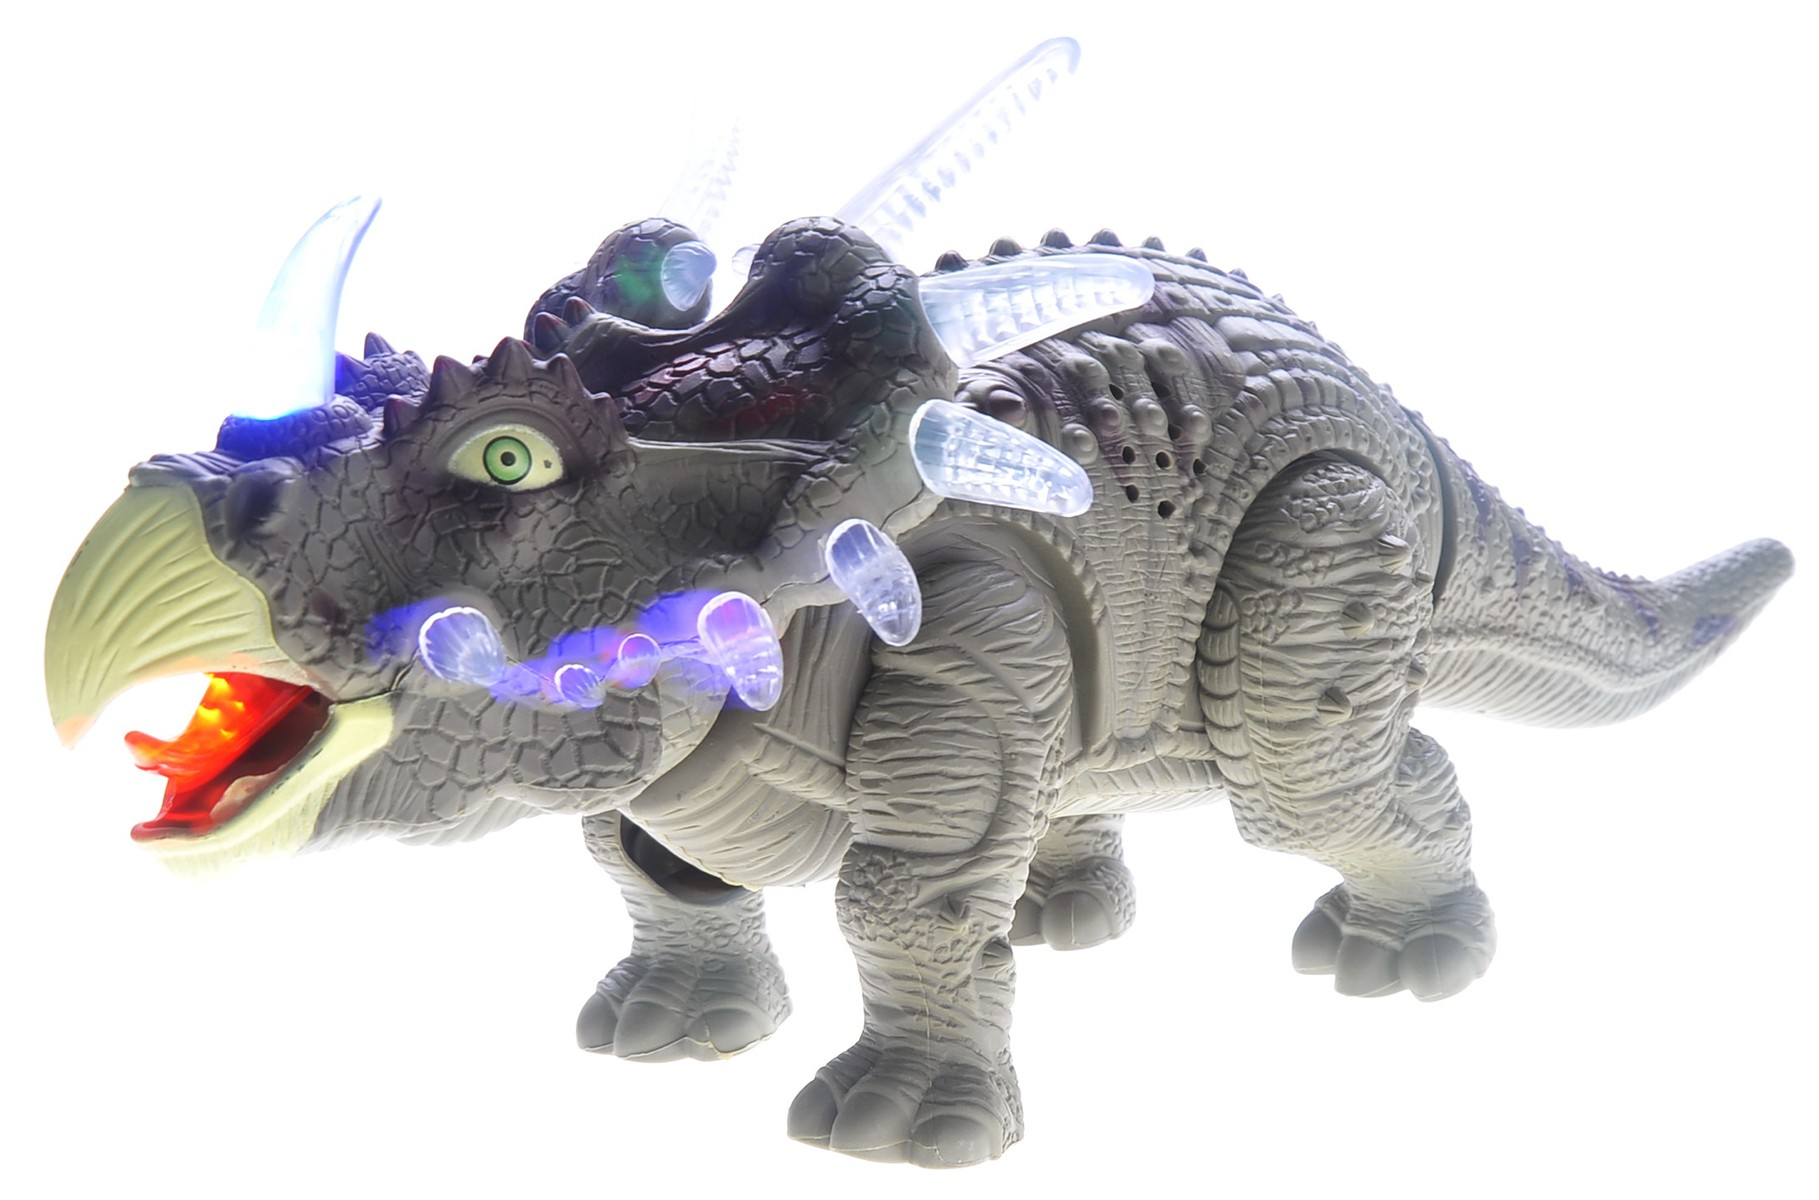 Walking Triceratops Dinosaur Toy Figure (Green)